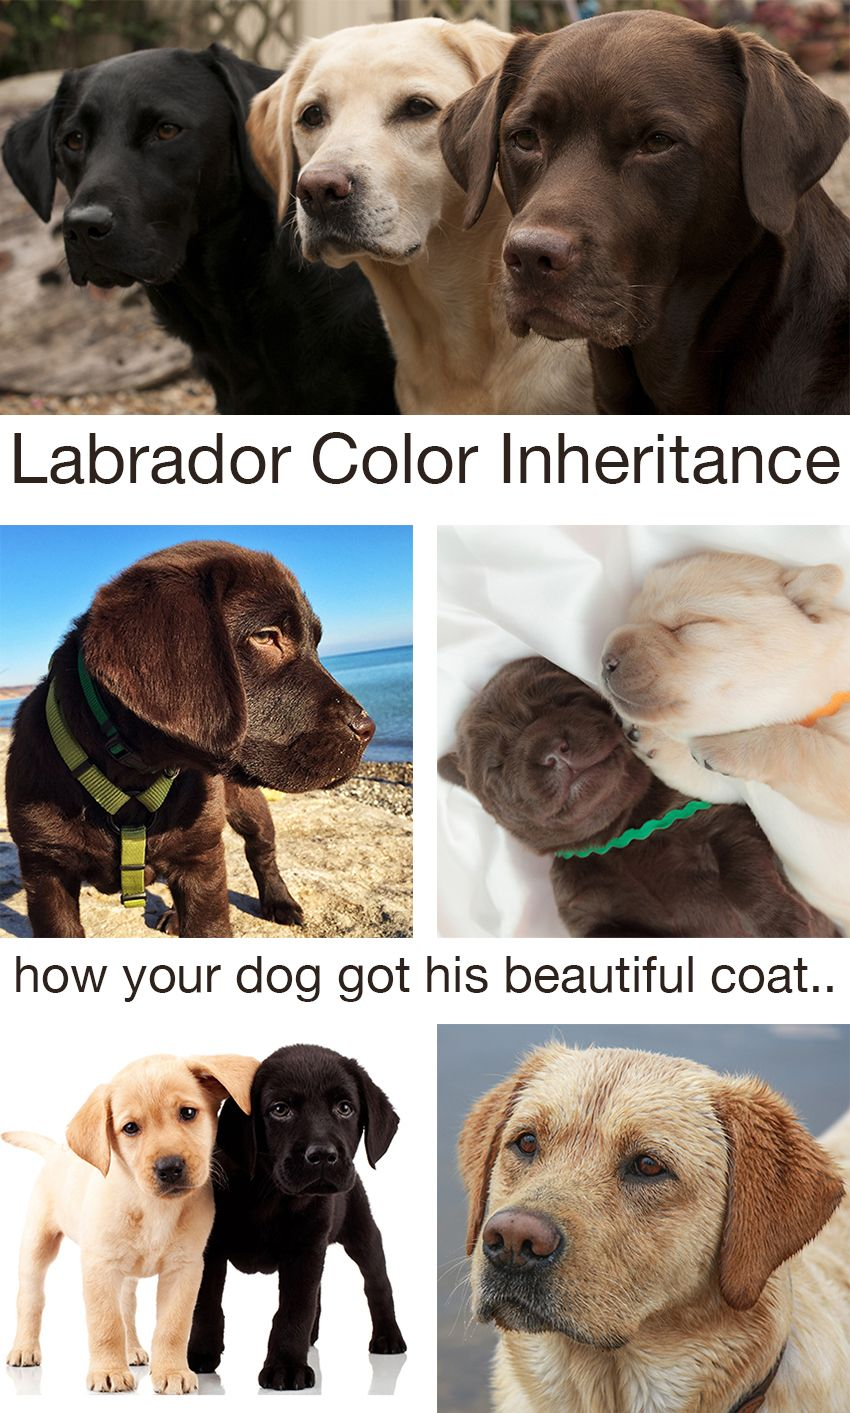 Labrador Colors The Secrets Of Labrador Color Inheritance